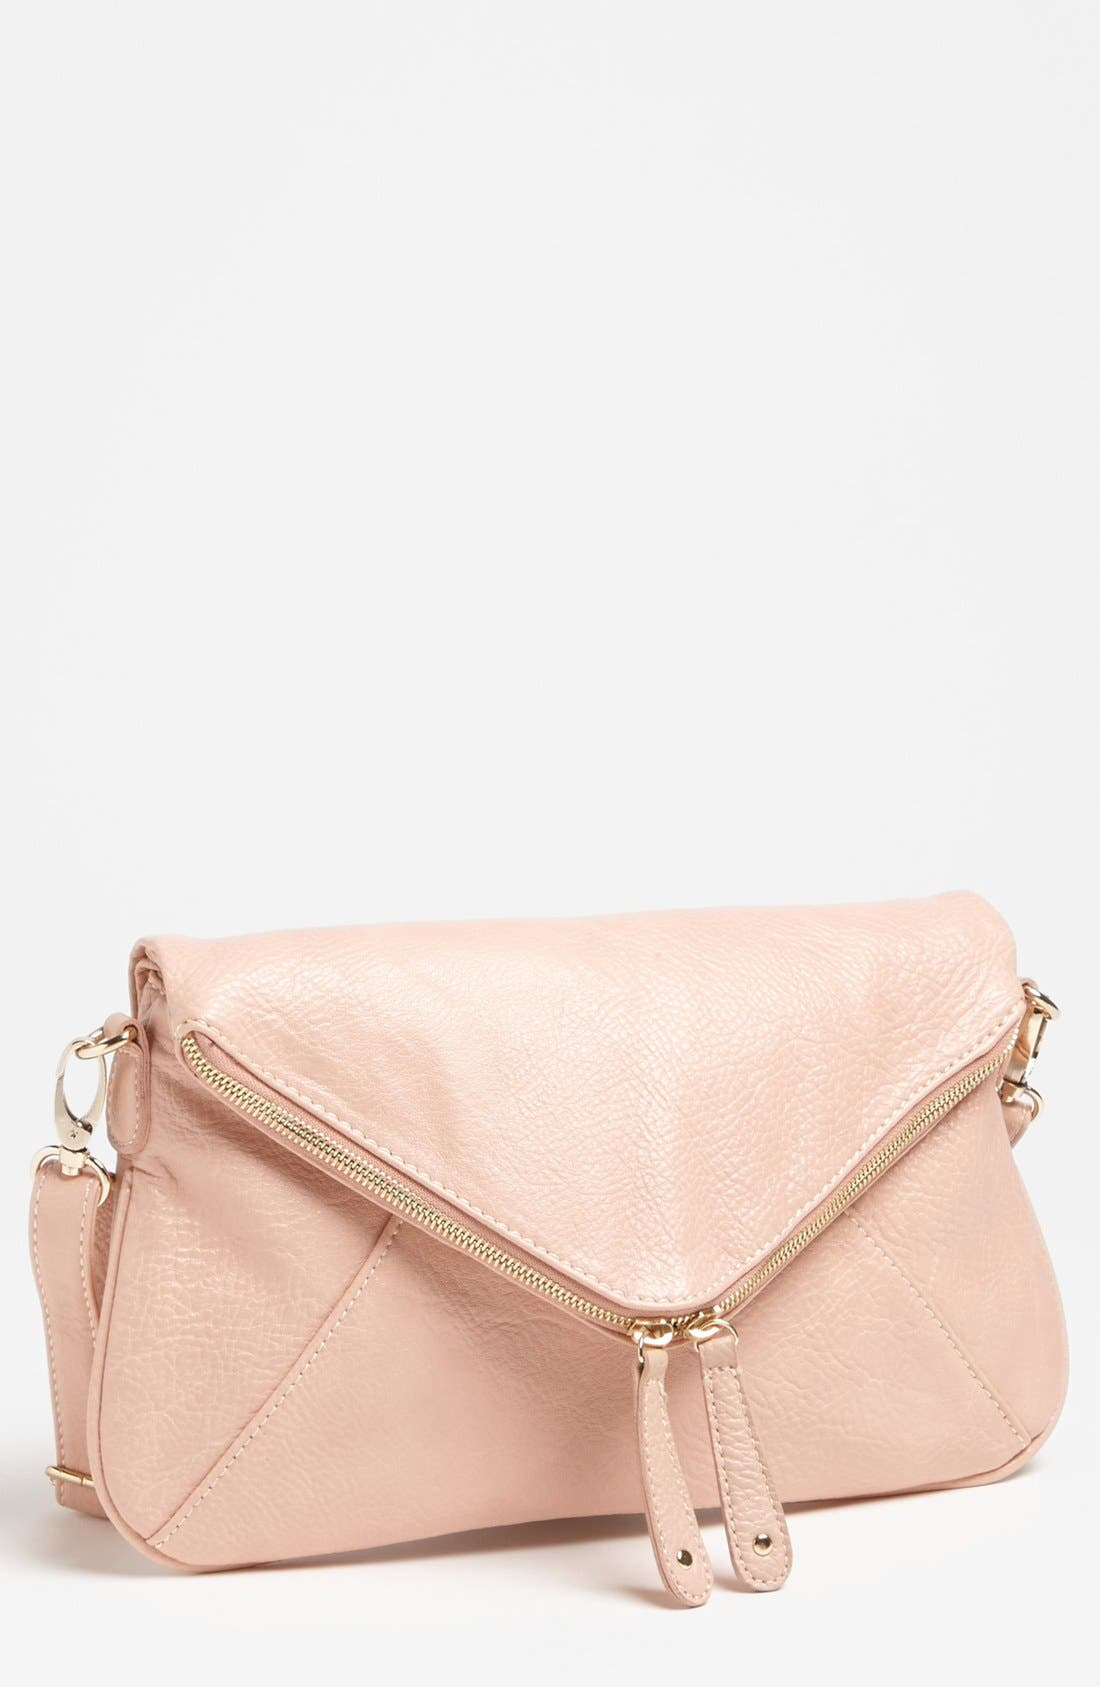 Alternate Image 1 Selected - Street Level Double Zip Faux Leather Crossbody Bag